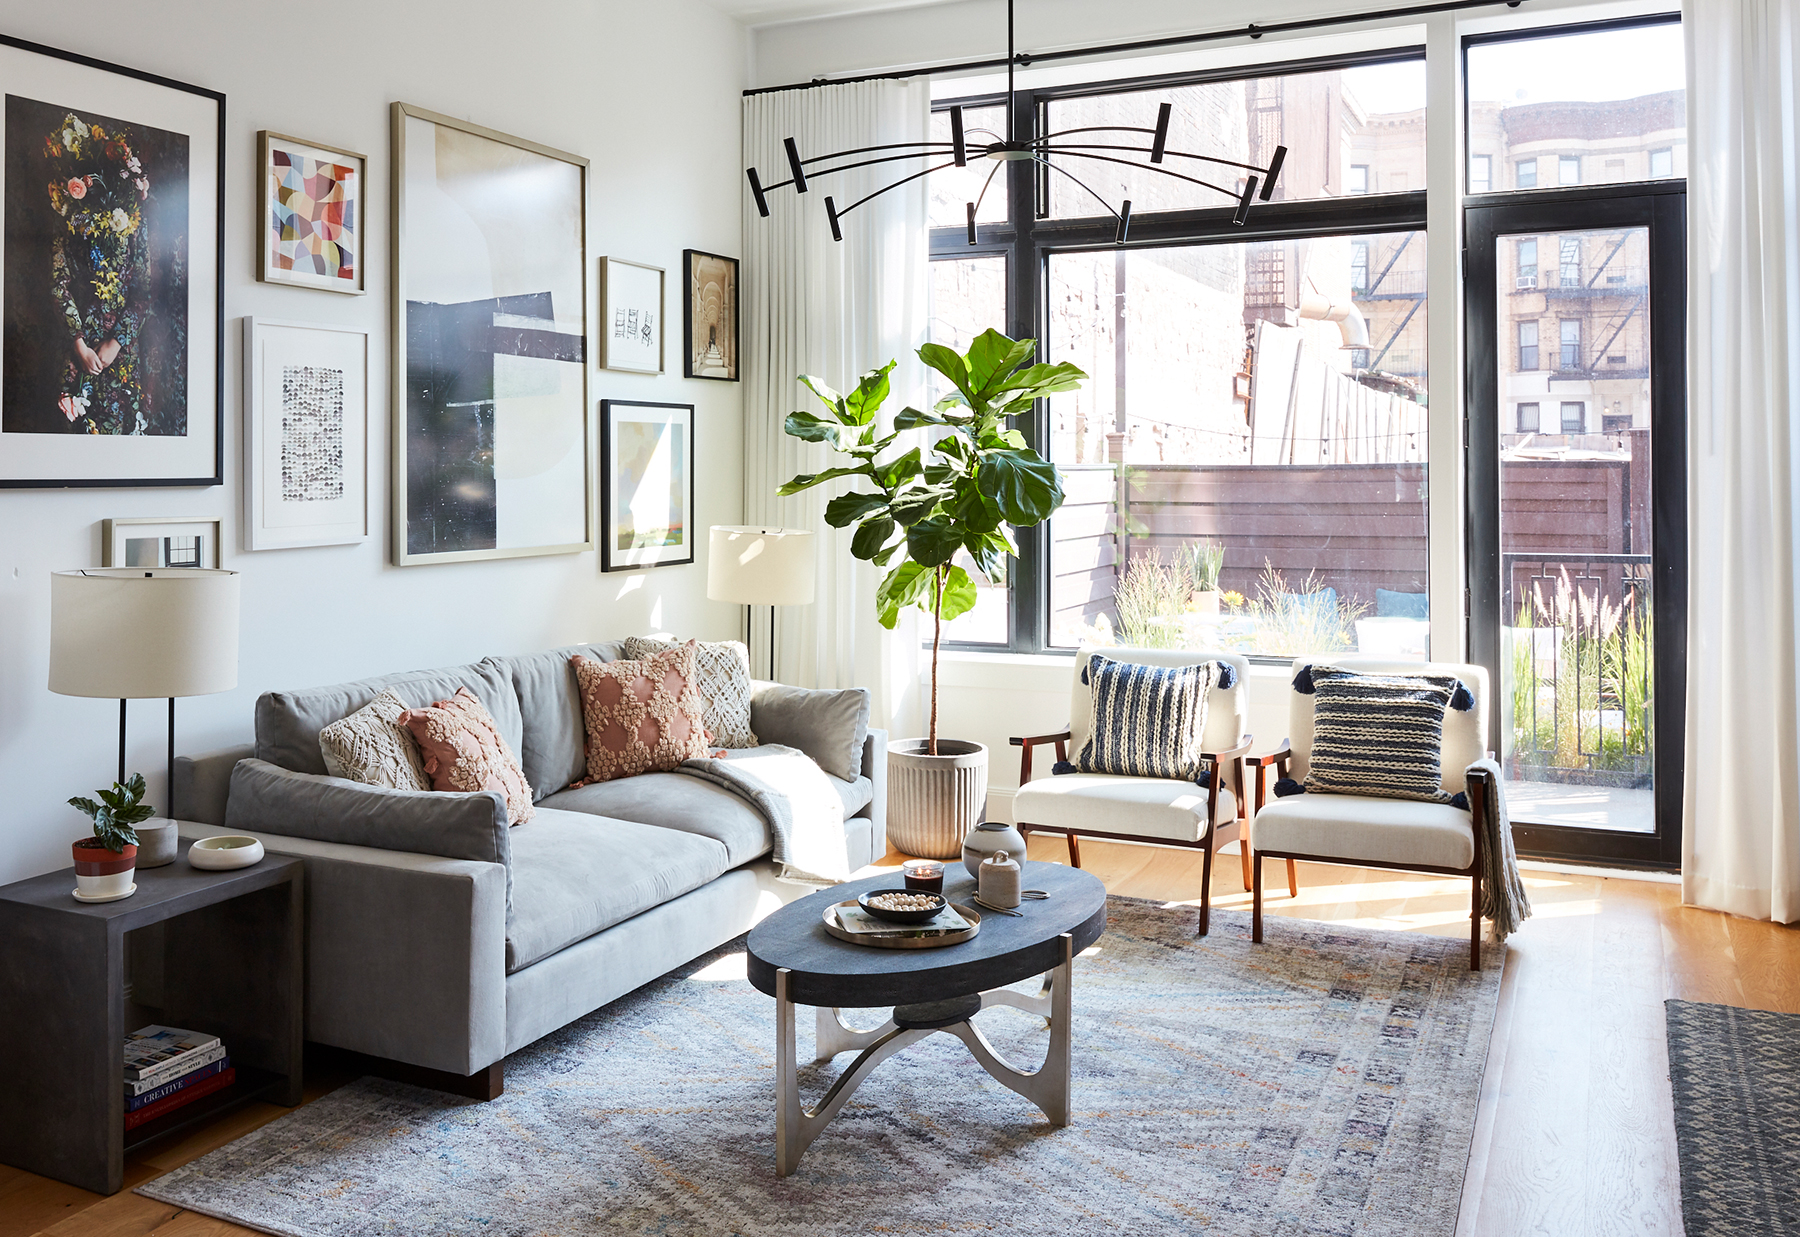 2019 Real Simple Home: Living Room